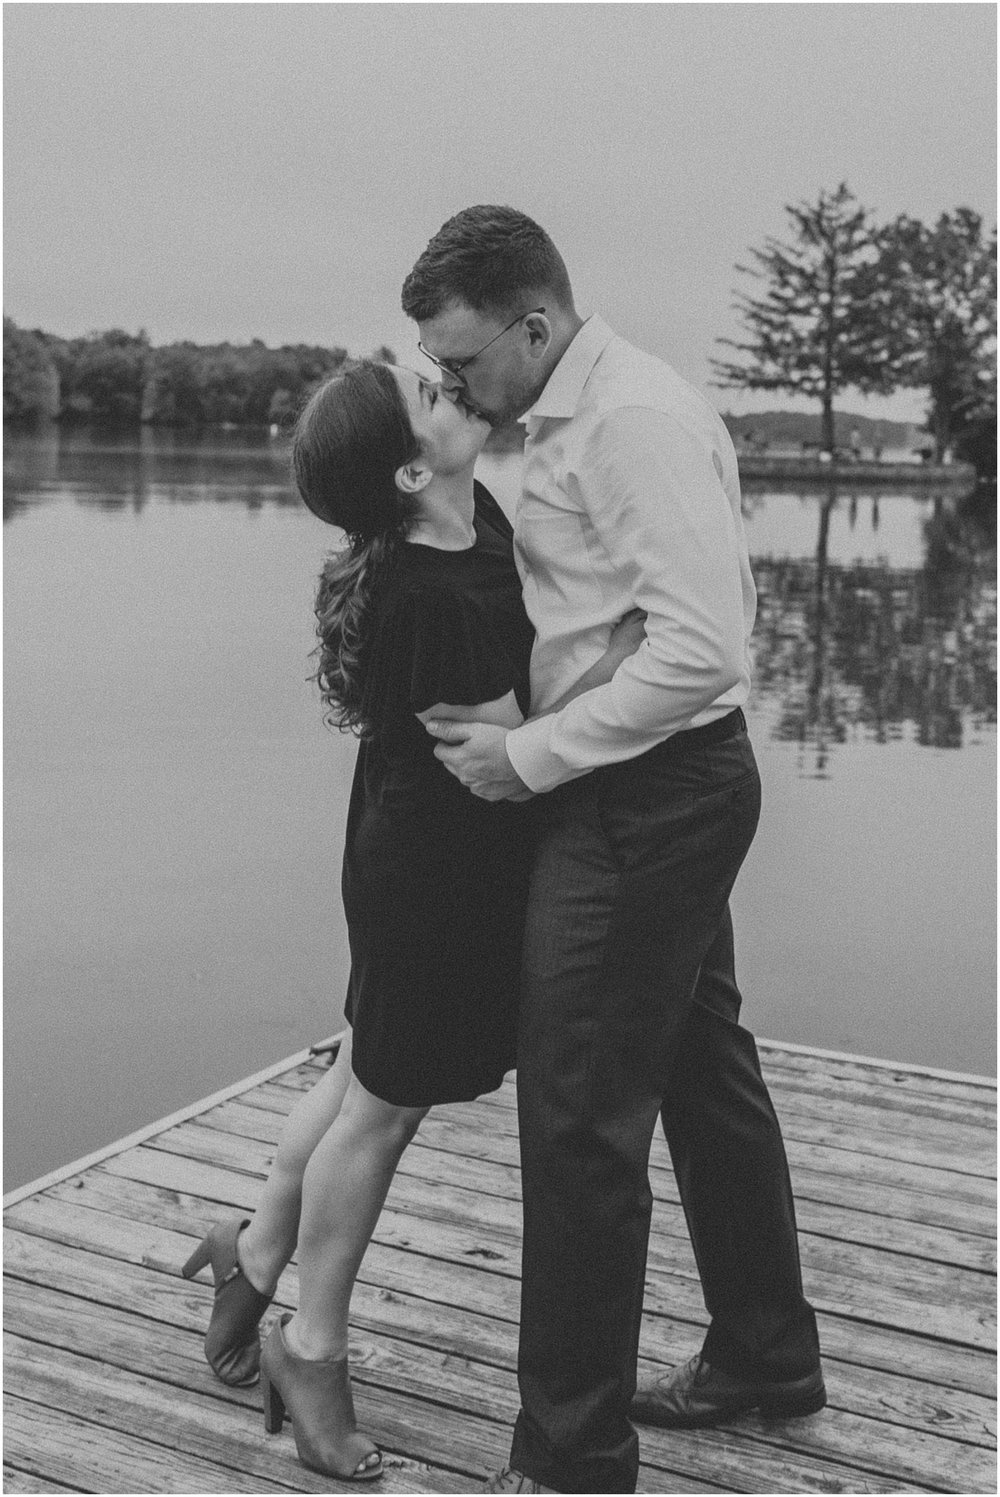 gifford pinchot state park-engagement-anniversary-photo session-outdoor photos-husband-wife-central pennsylvania_0321.jpg